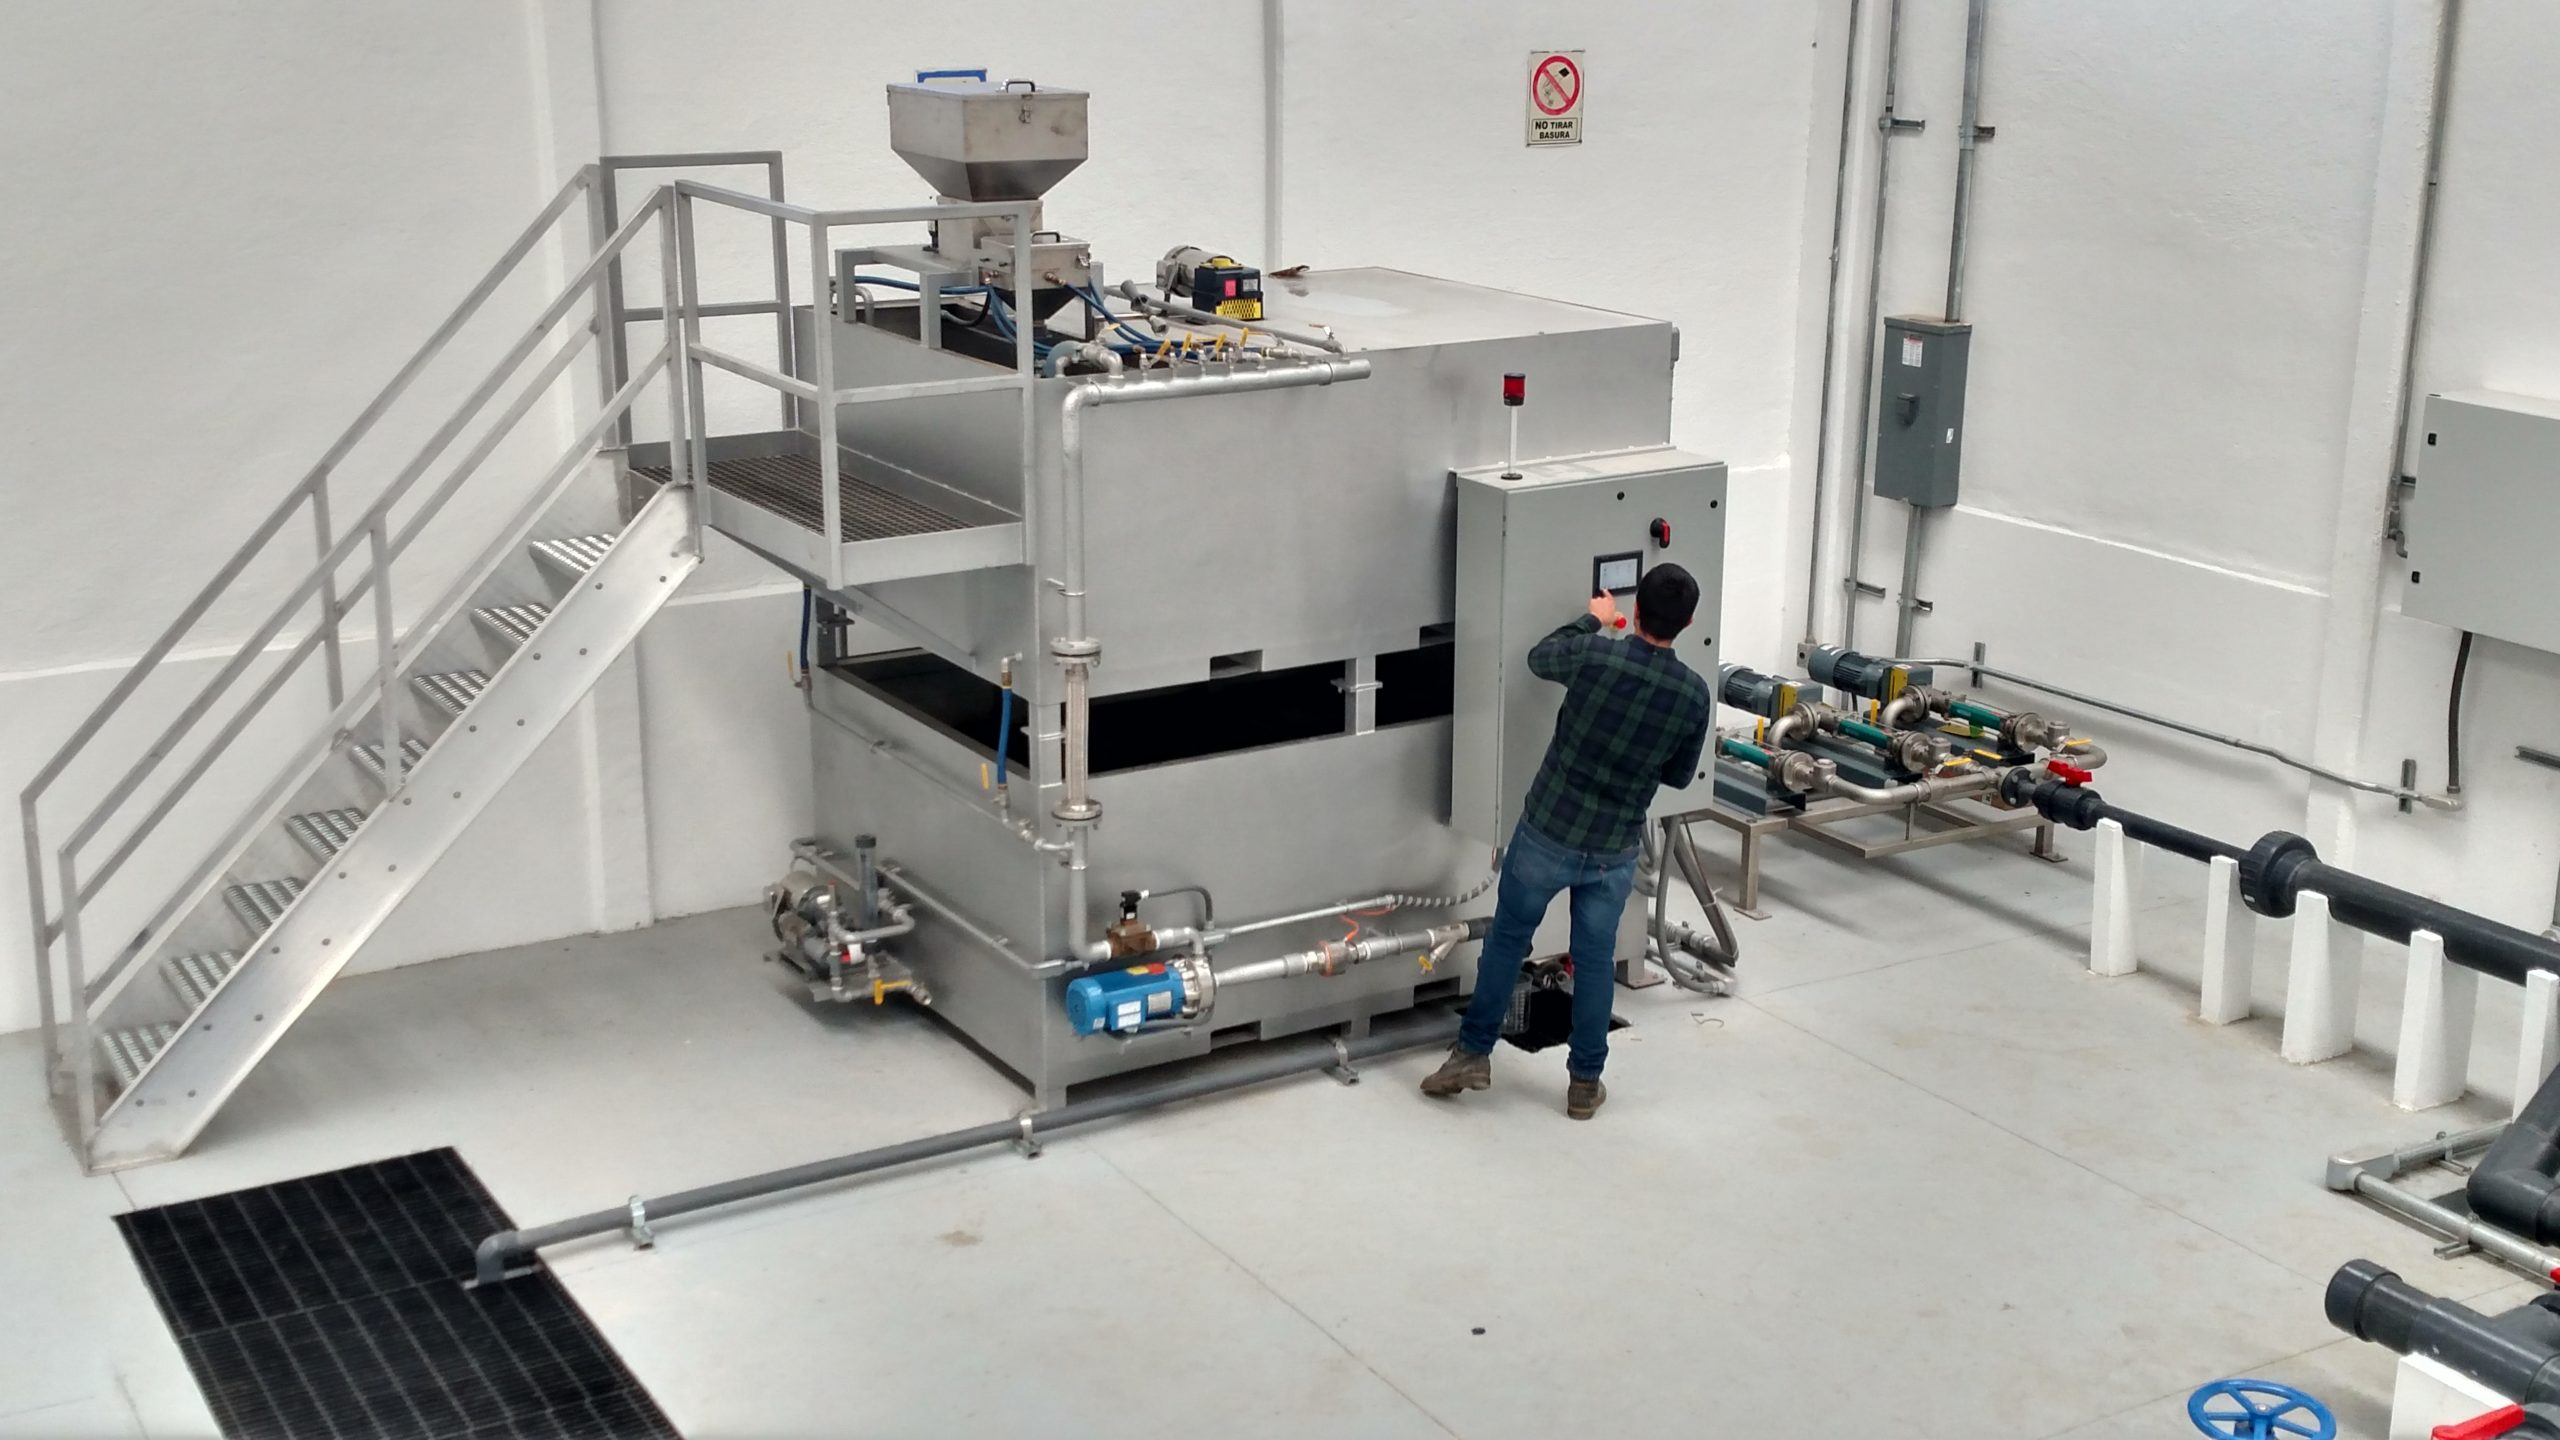 A man programming the control panel of a large stainless steel dry polymer preparation system that has two tanks.